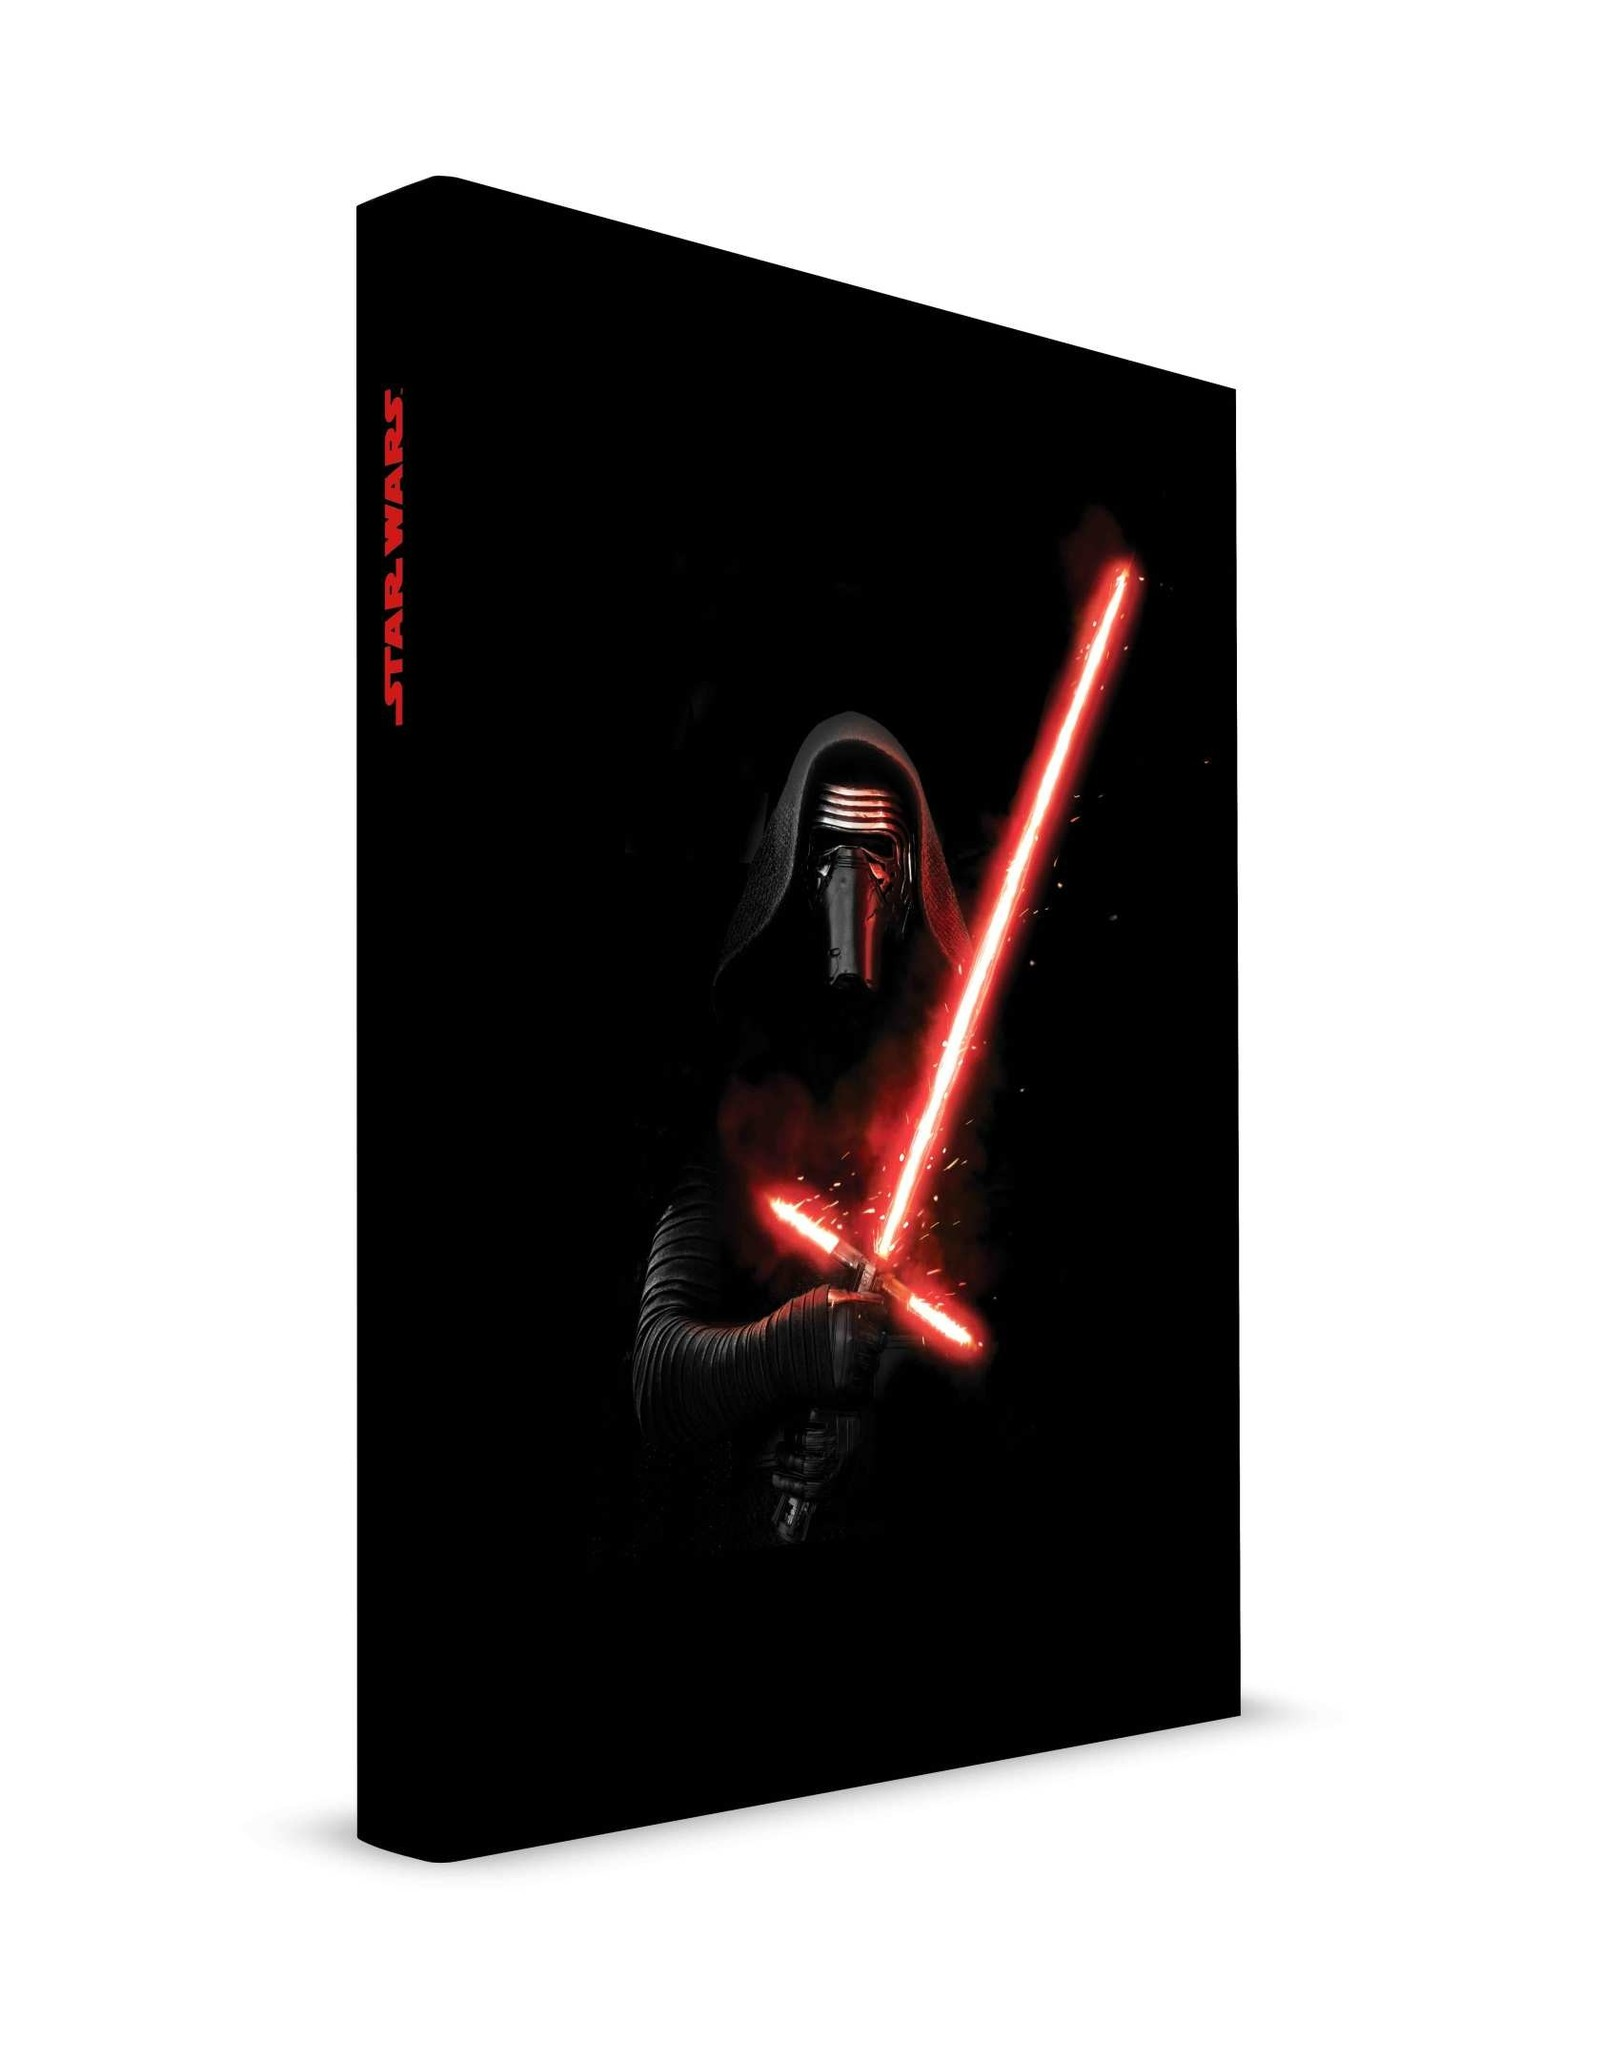 SD Toys STAR WARS Episode VII Notebook with Light and Sound - Kylo Lightsaber